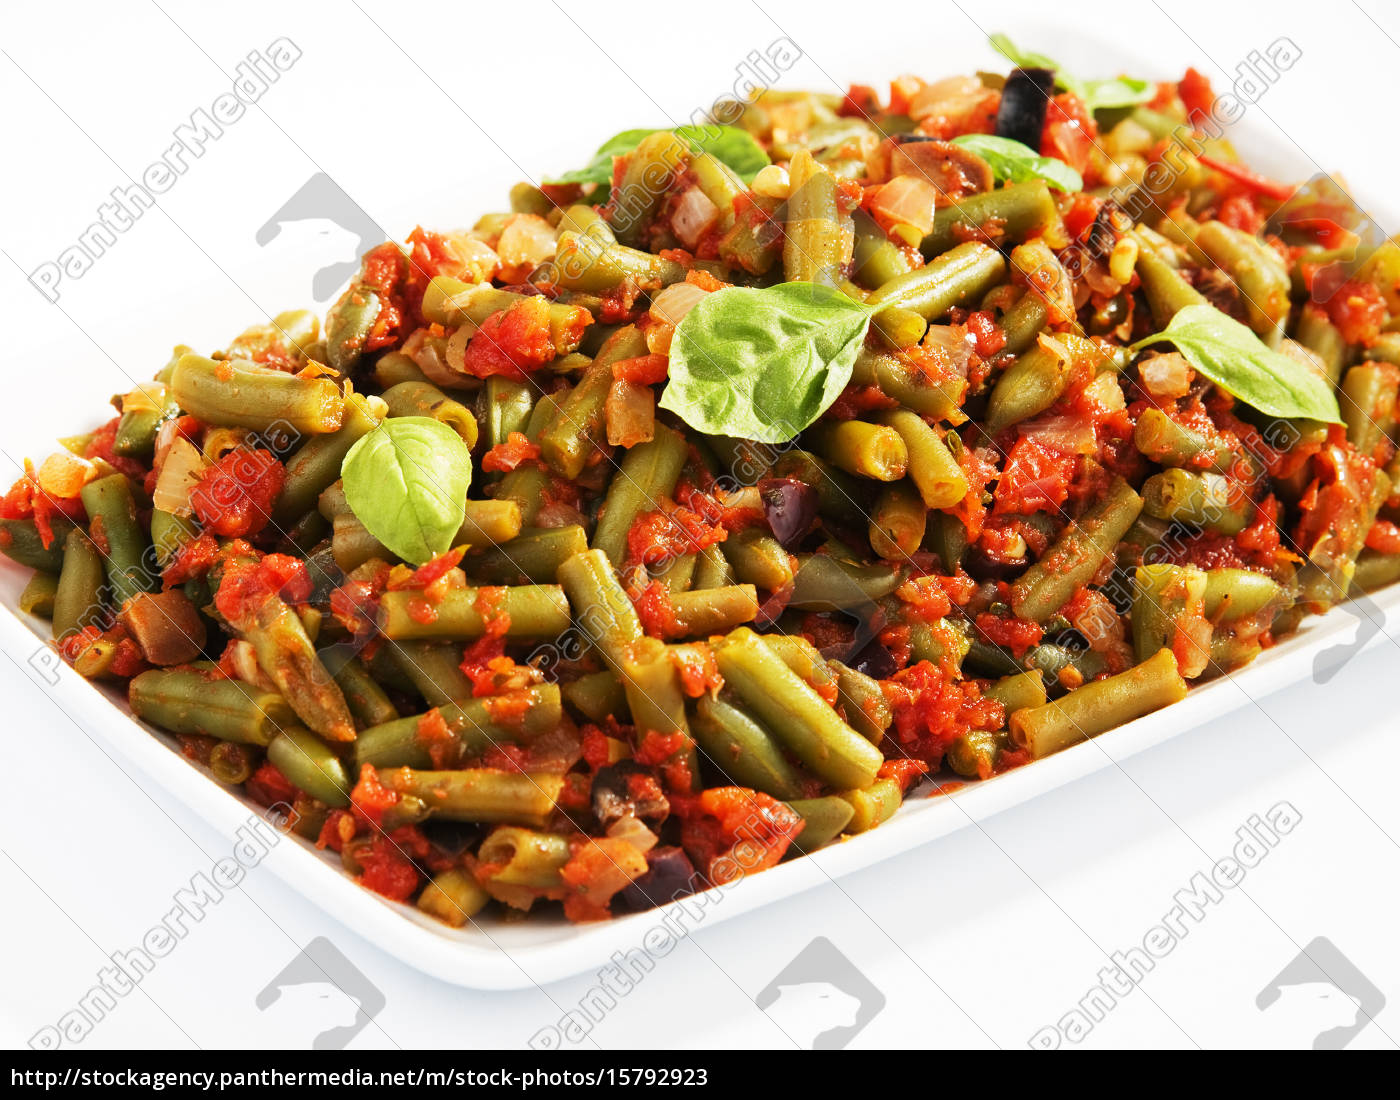 french, beans, and, tomato, casserole, french, beans - 15792923